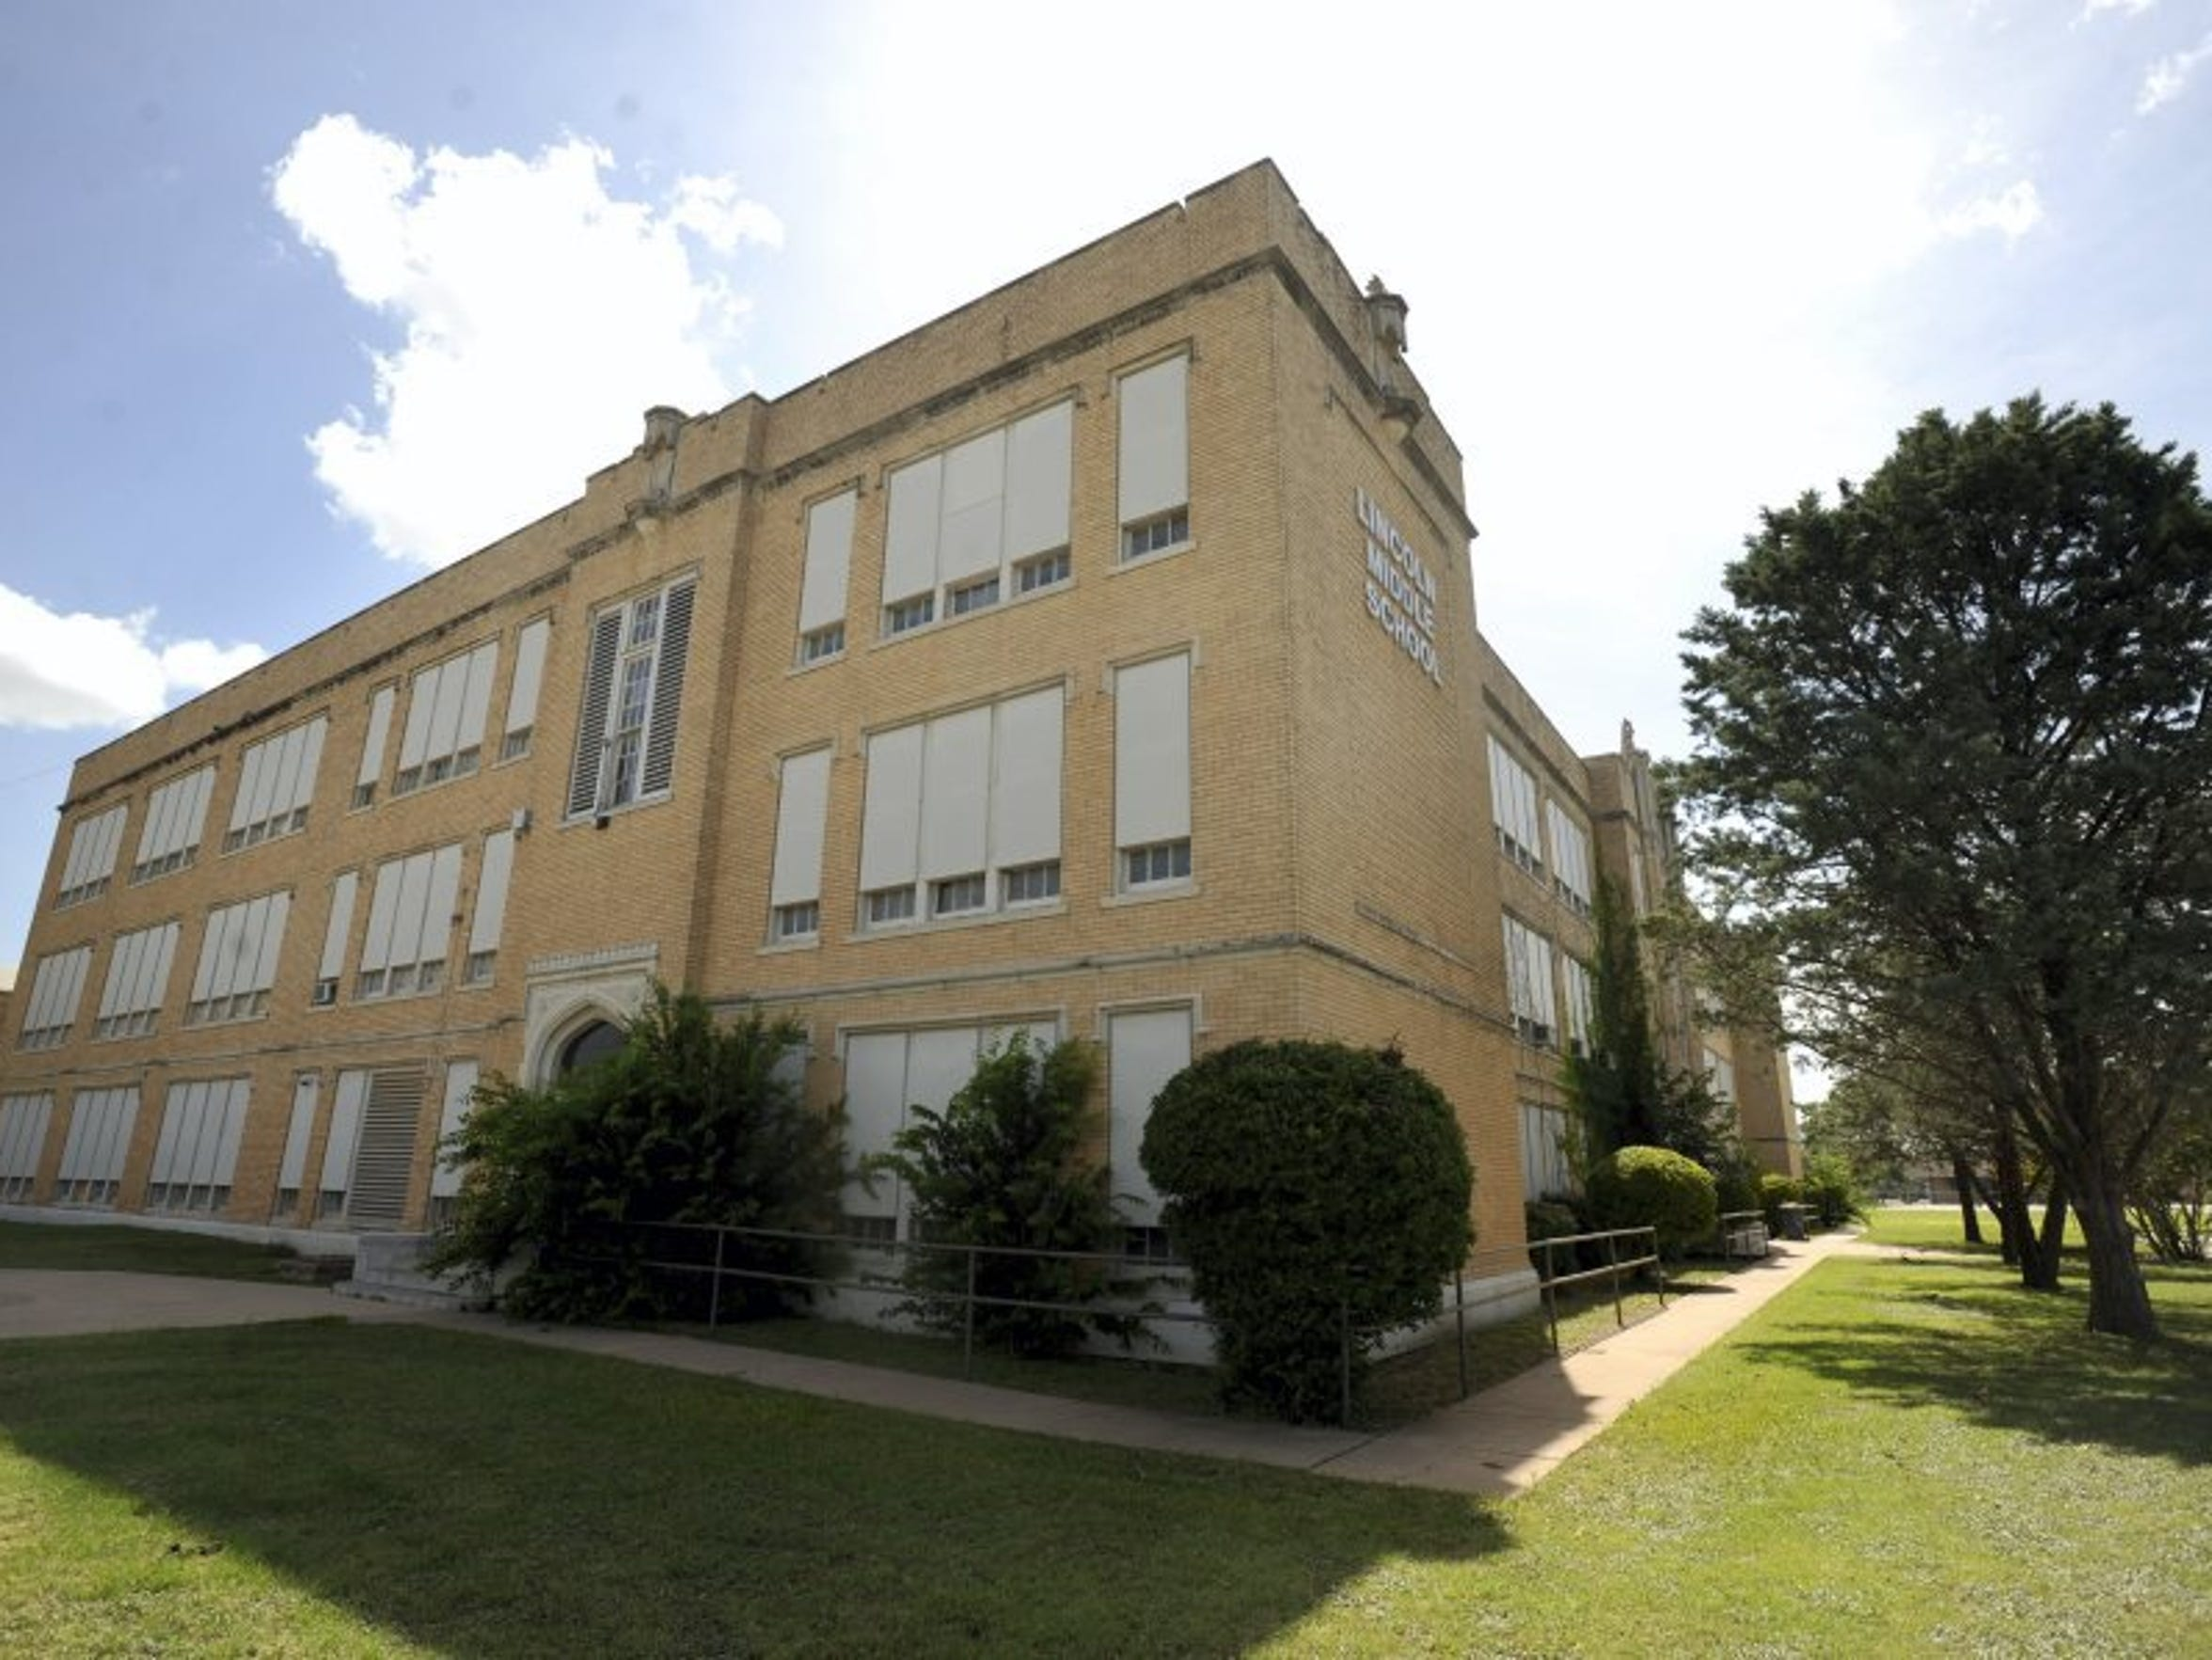 The former Lincoln Middle School building at South